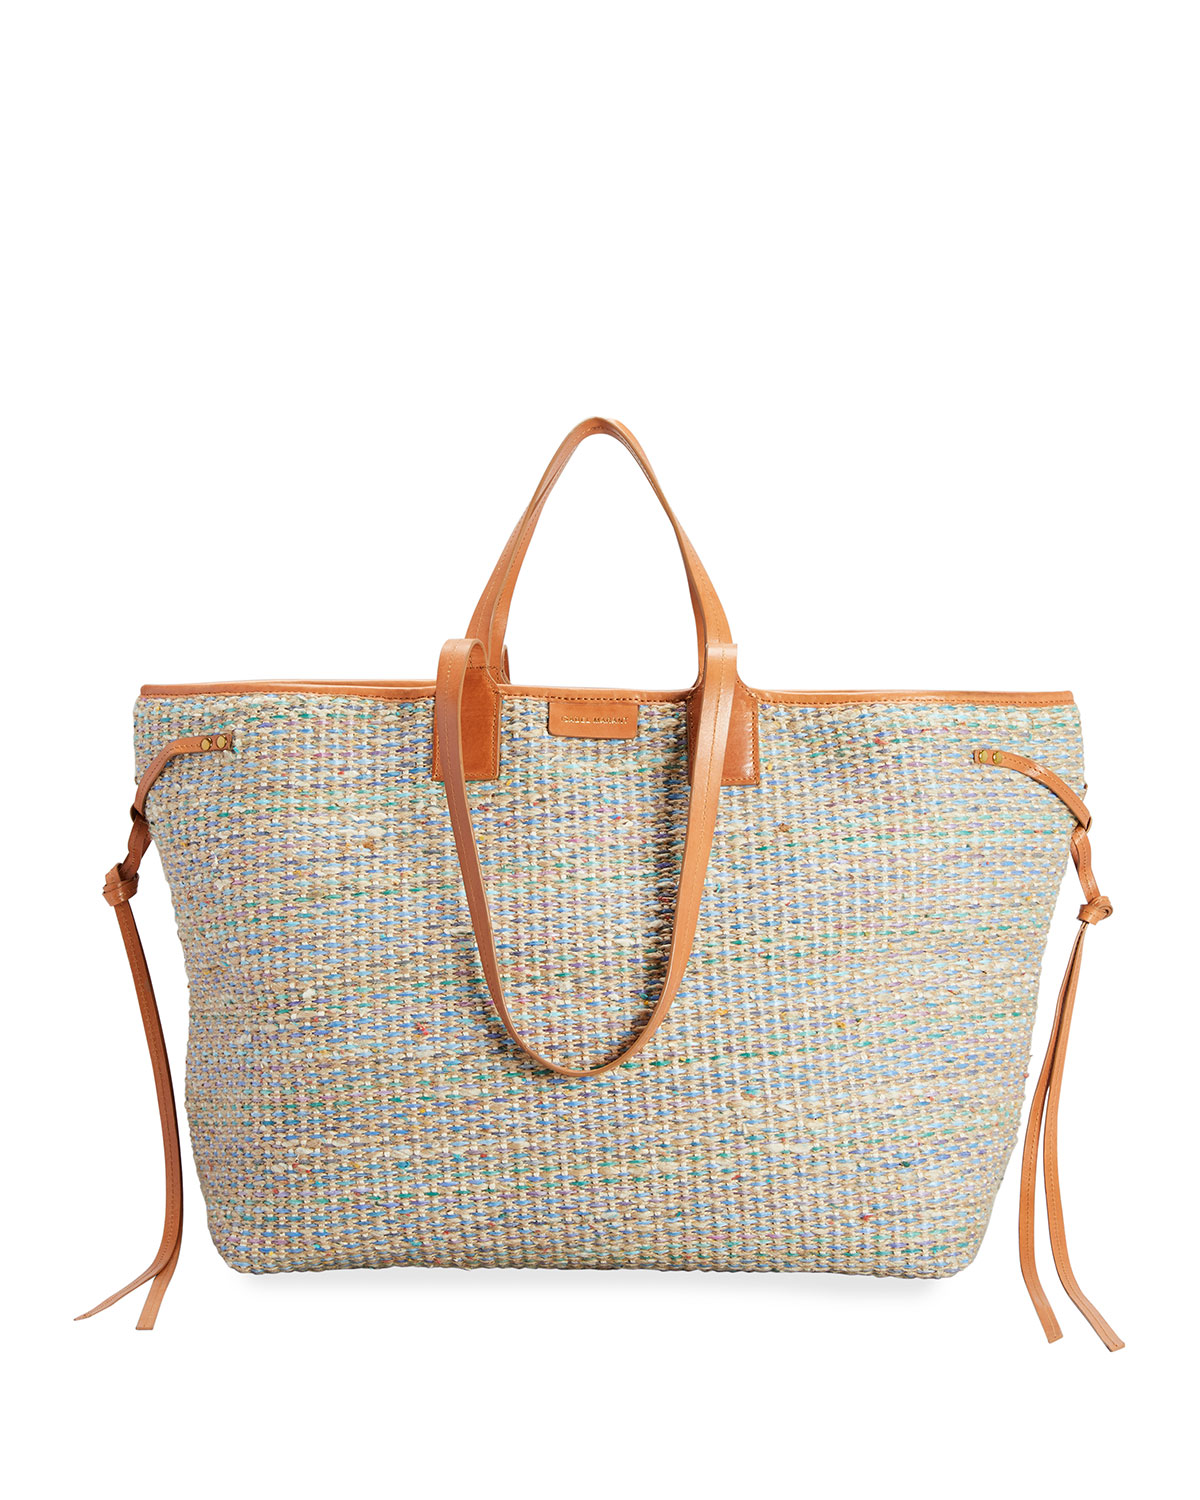 Isabel Marant WYDRA MULTICOLOR JUTE SHOPPER TOTE BAG